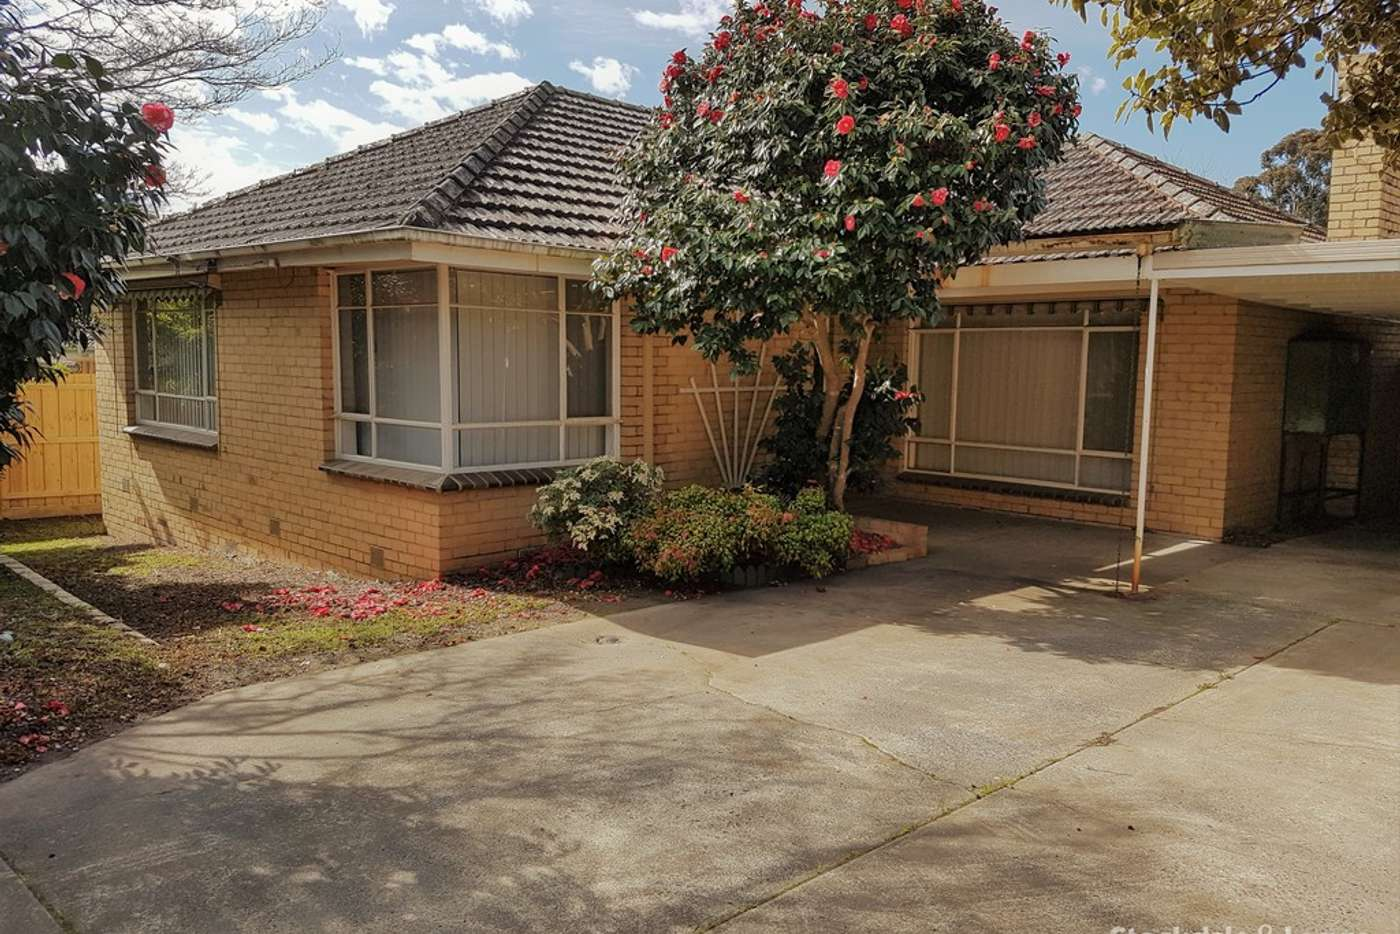 Main view of Homely house listing, 460 McClelland Drive, Langwarrin VIC 3910